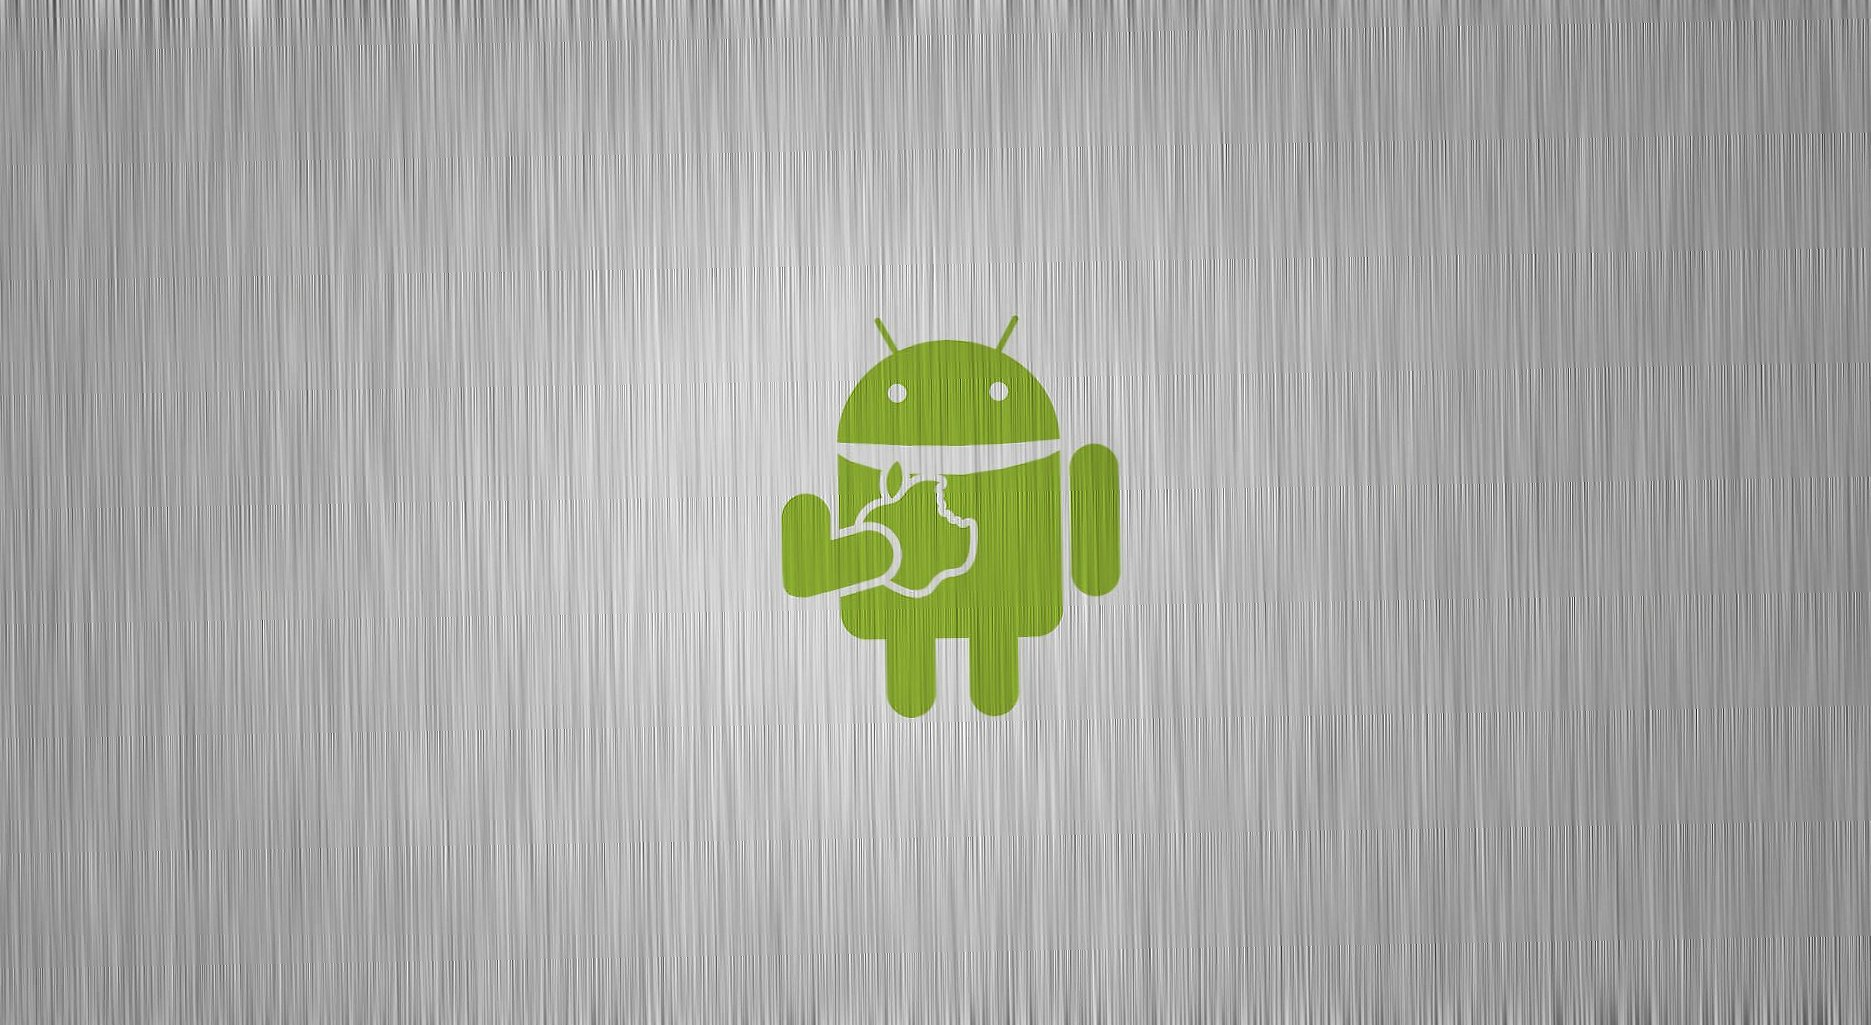 Gnam android wallpapers HD quality